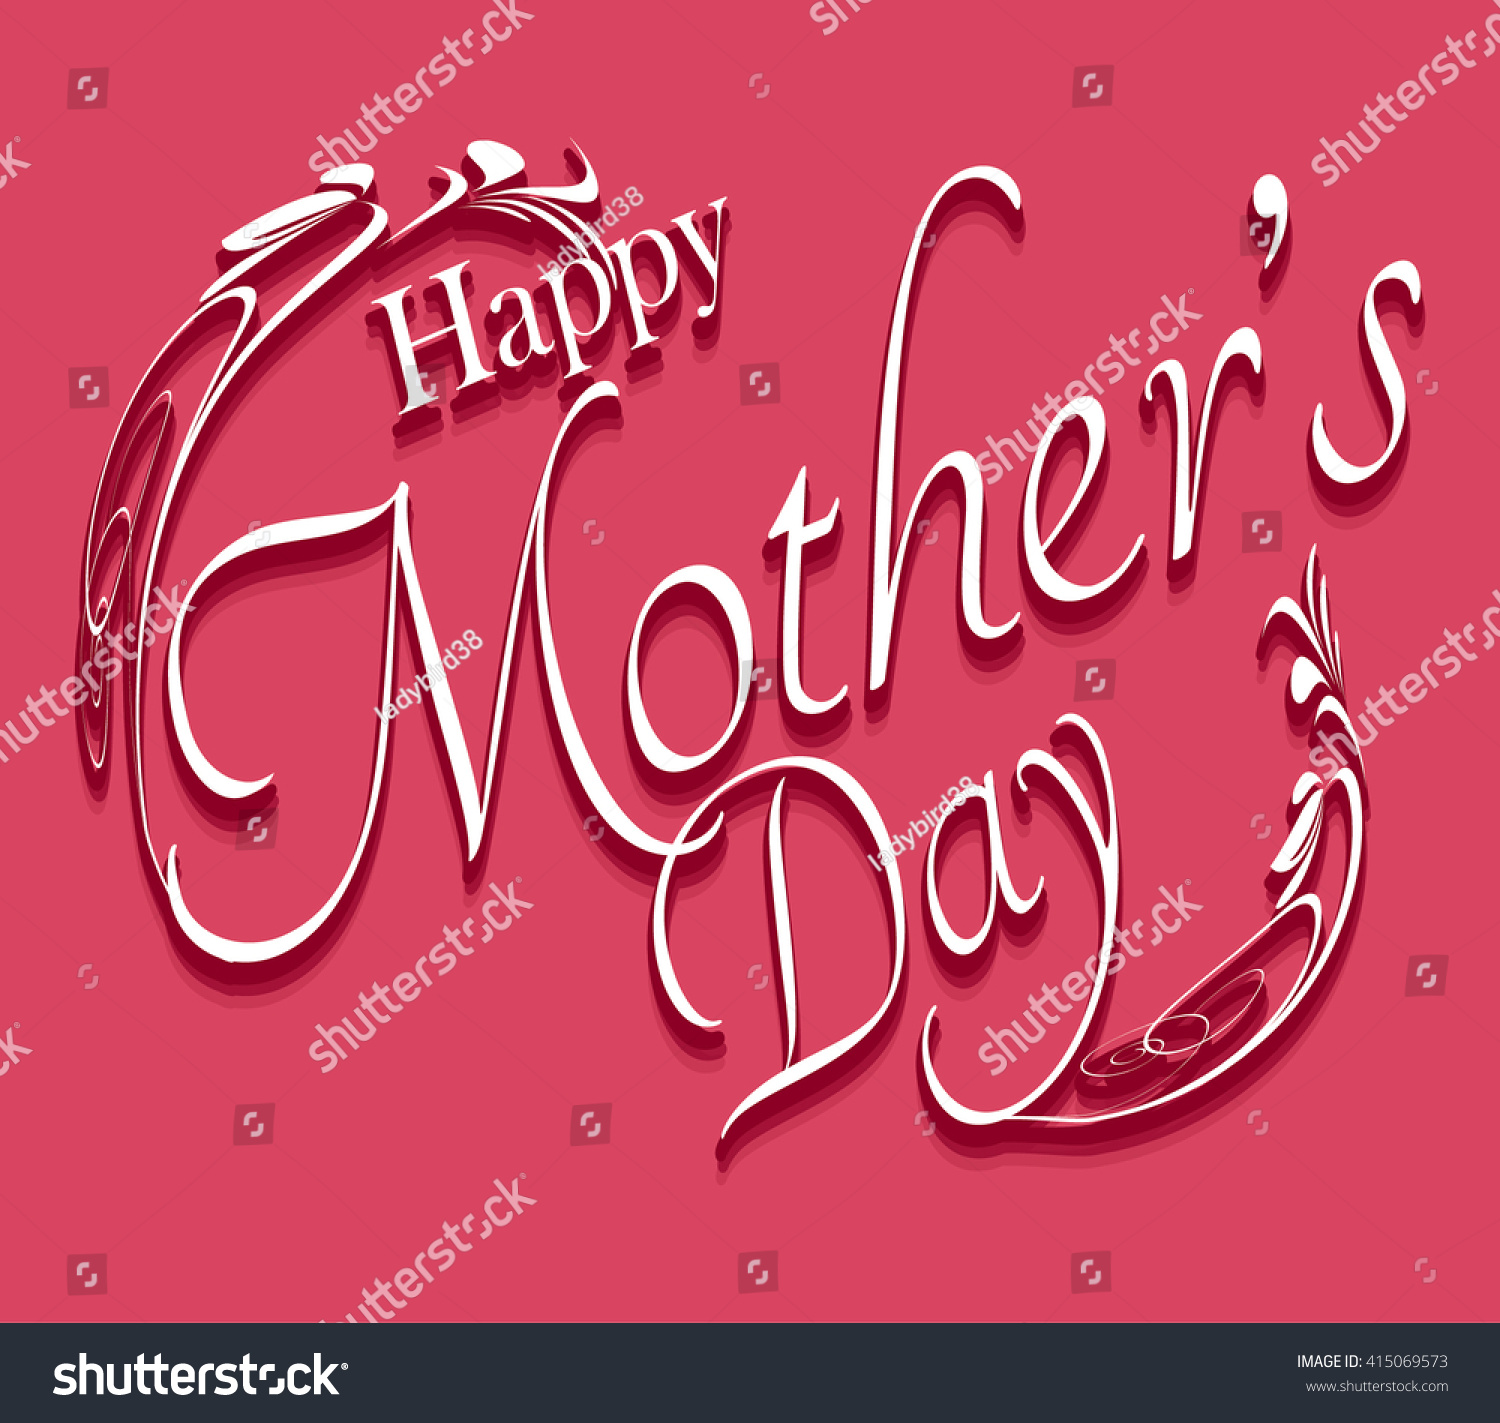 Happy mothers day lovely greeting card stock vector 415069573 happy mothers day lovely greeting card beautiful mothers day text kristyandbryce Choice Image